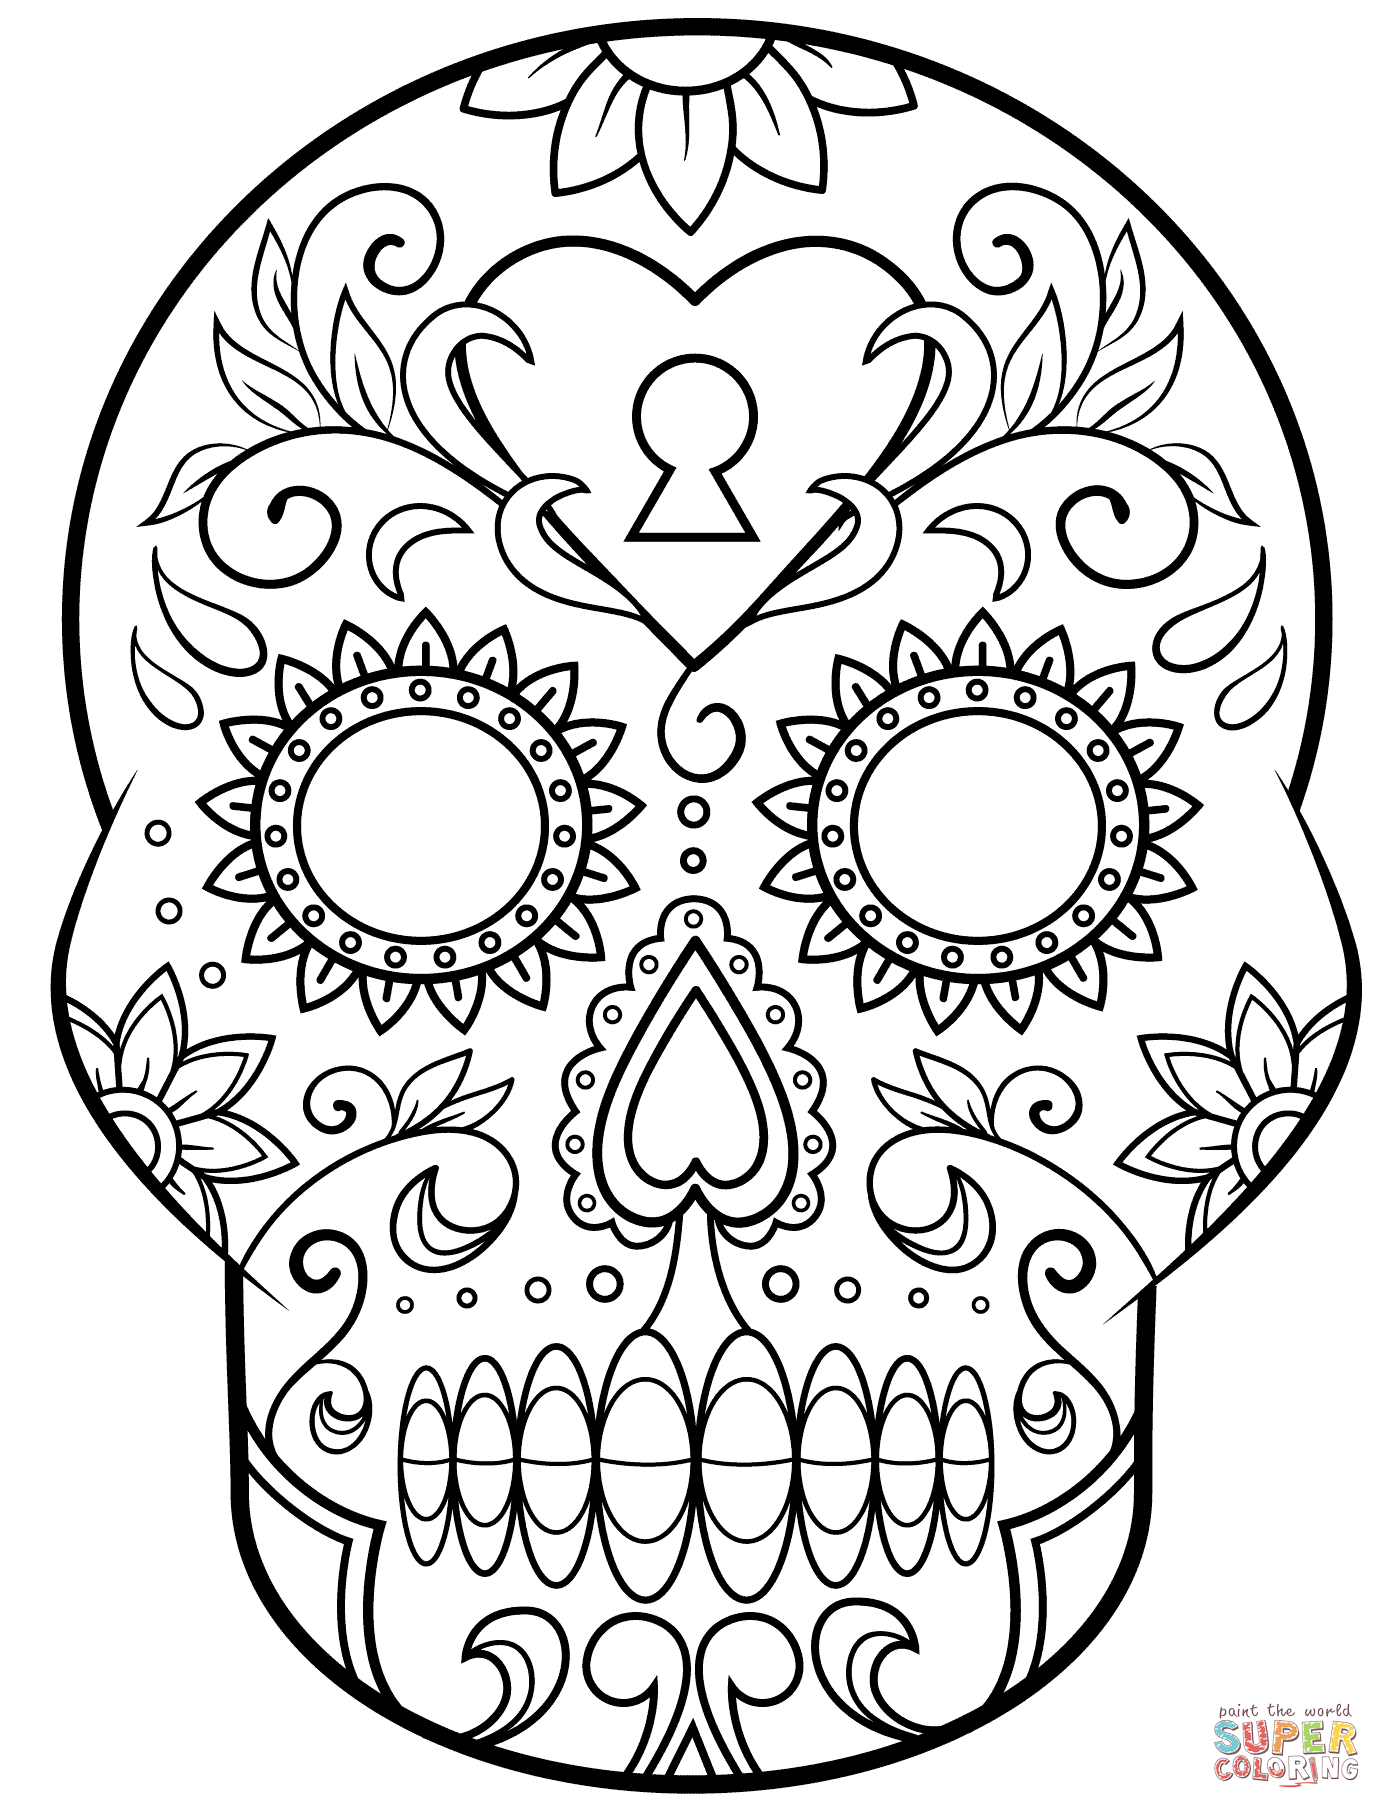 Day Of The Dead Sugar Skull Coloring Page   Free Printable - Free Printable Sugar Skull Coloring Pages